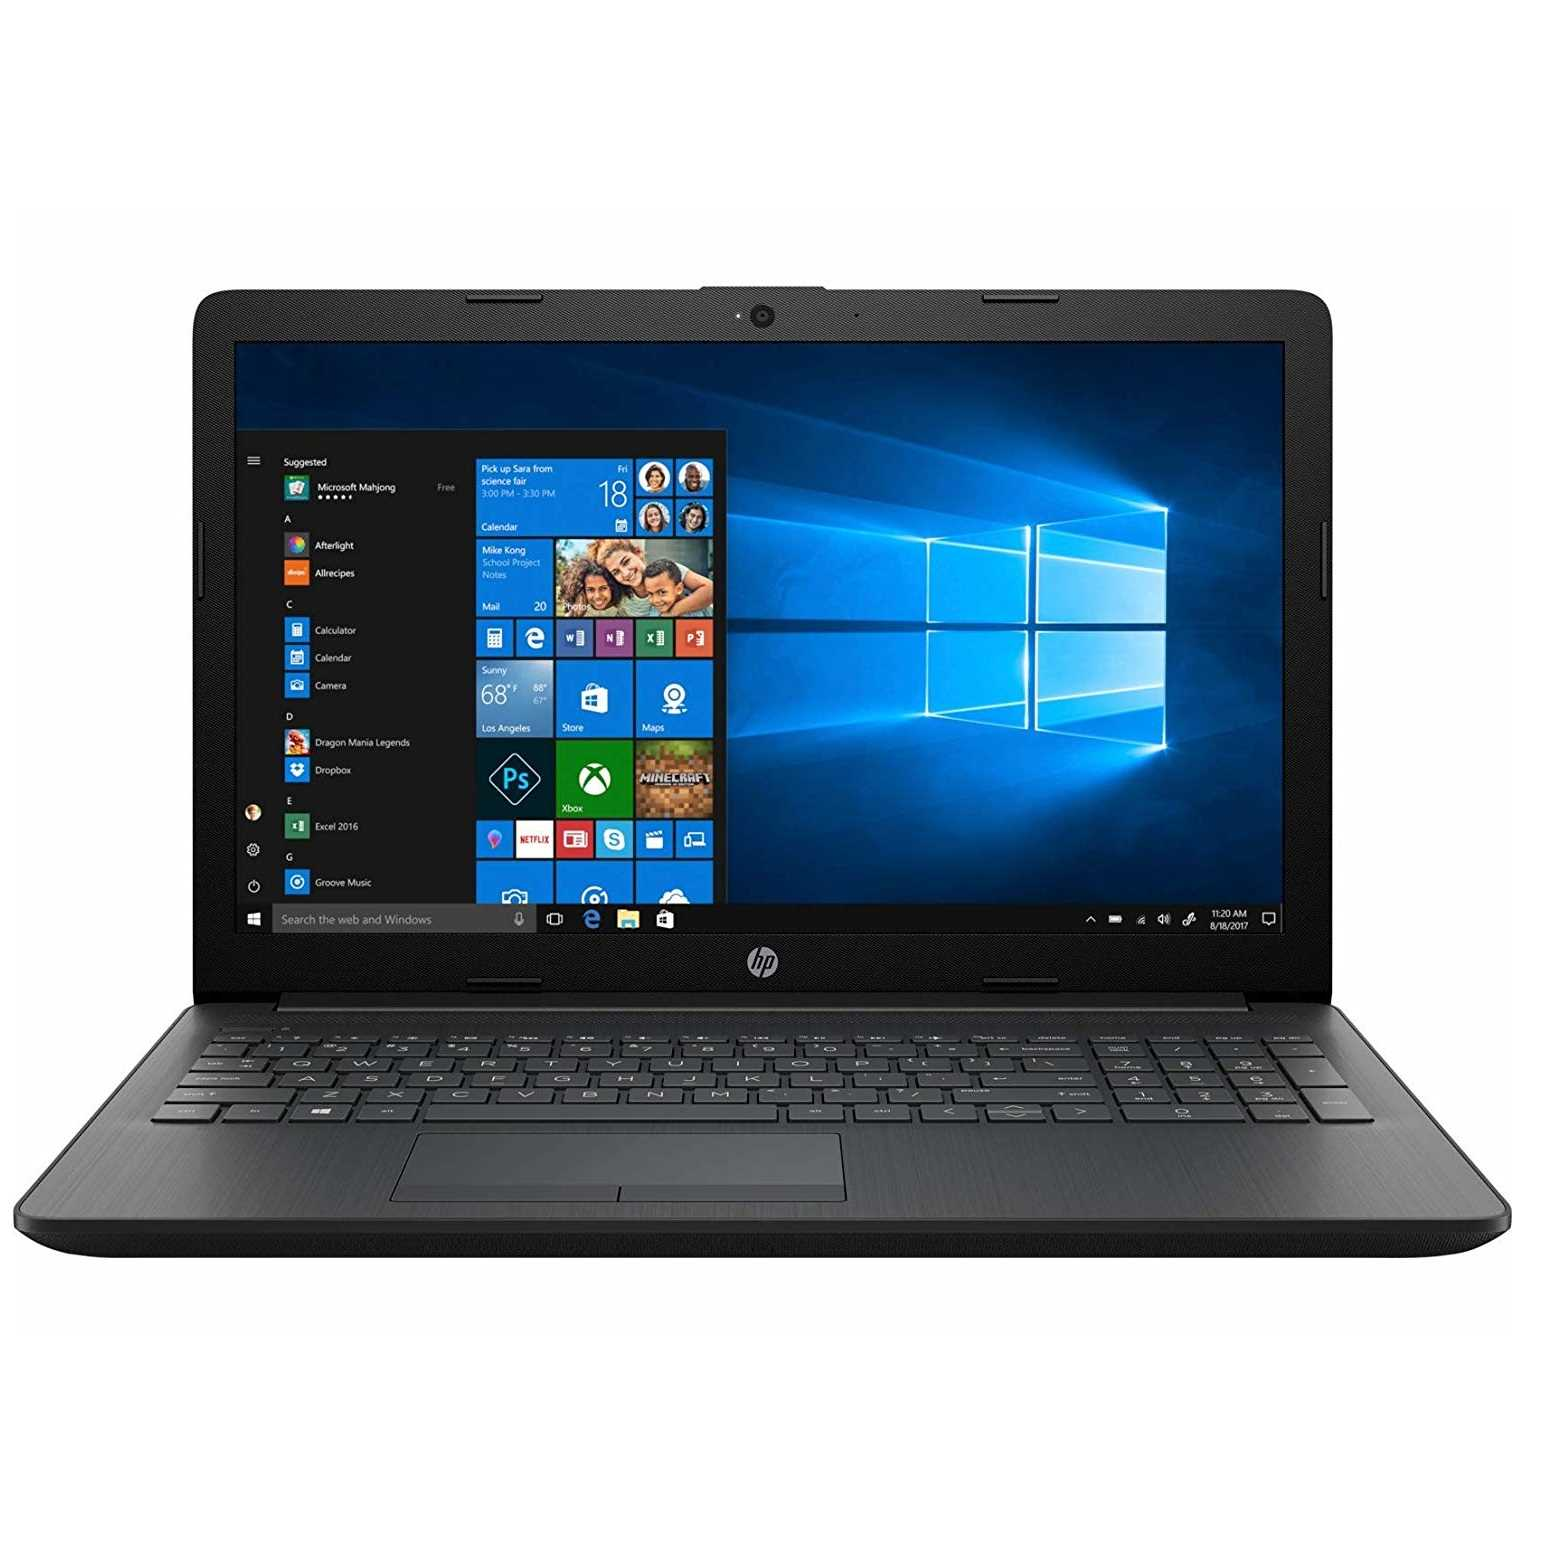 HP 15 DY0004AU Laptop